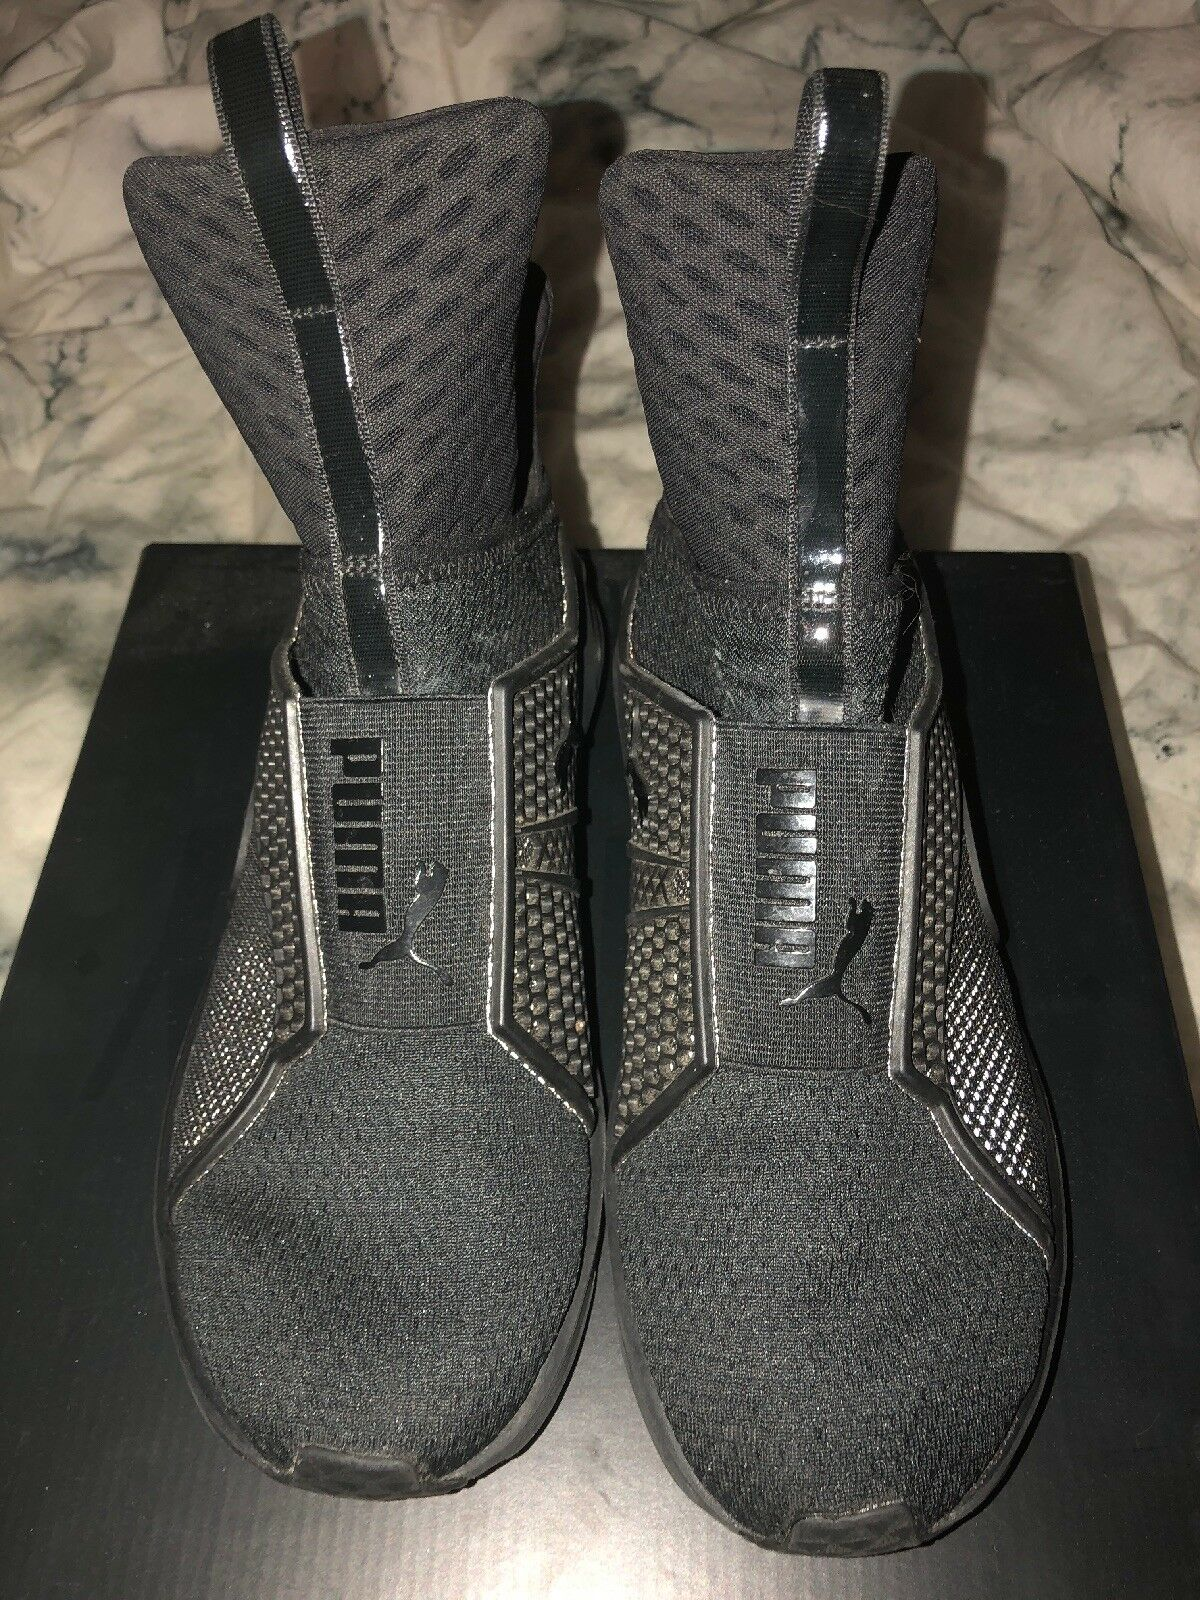 Puma Fenty Trainer Women - Size 8.5 - Black